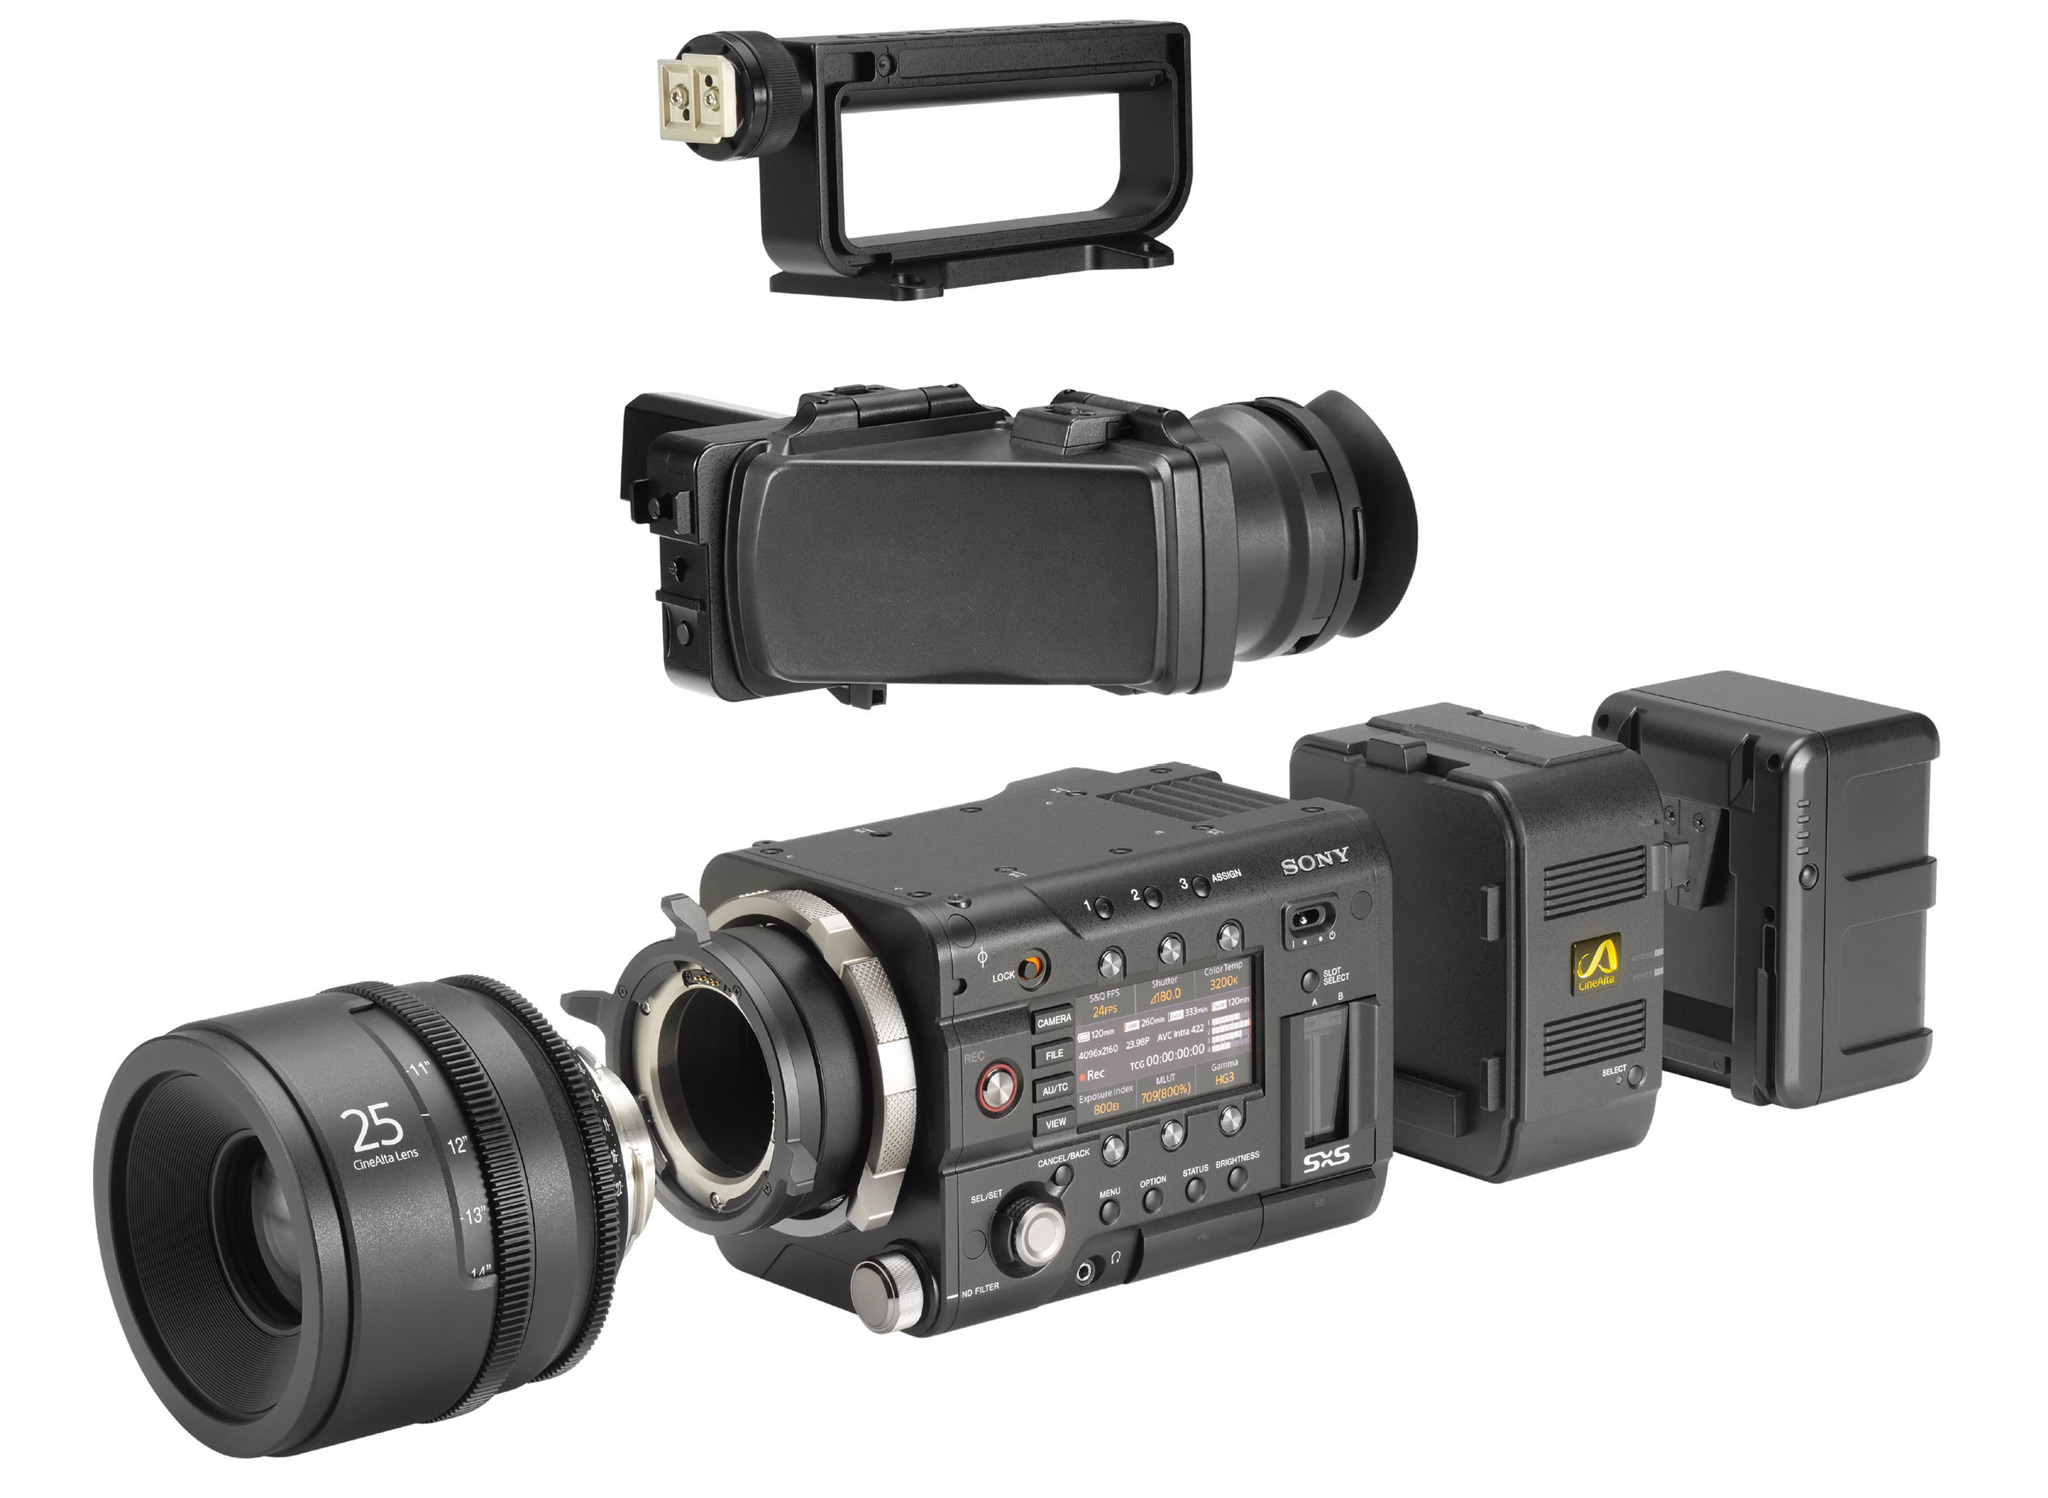 Sony announces PMW-F55 4K pro camcorder with global shutter, F5